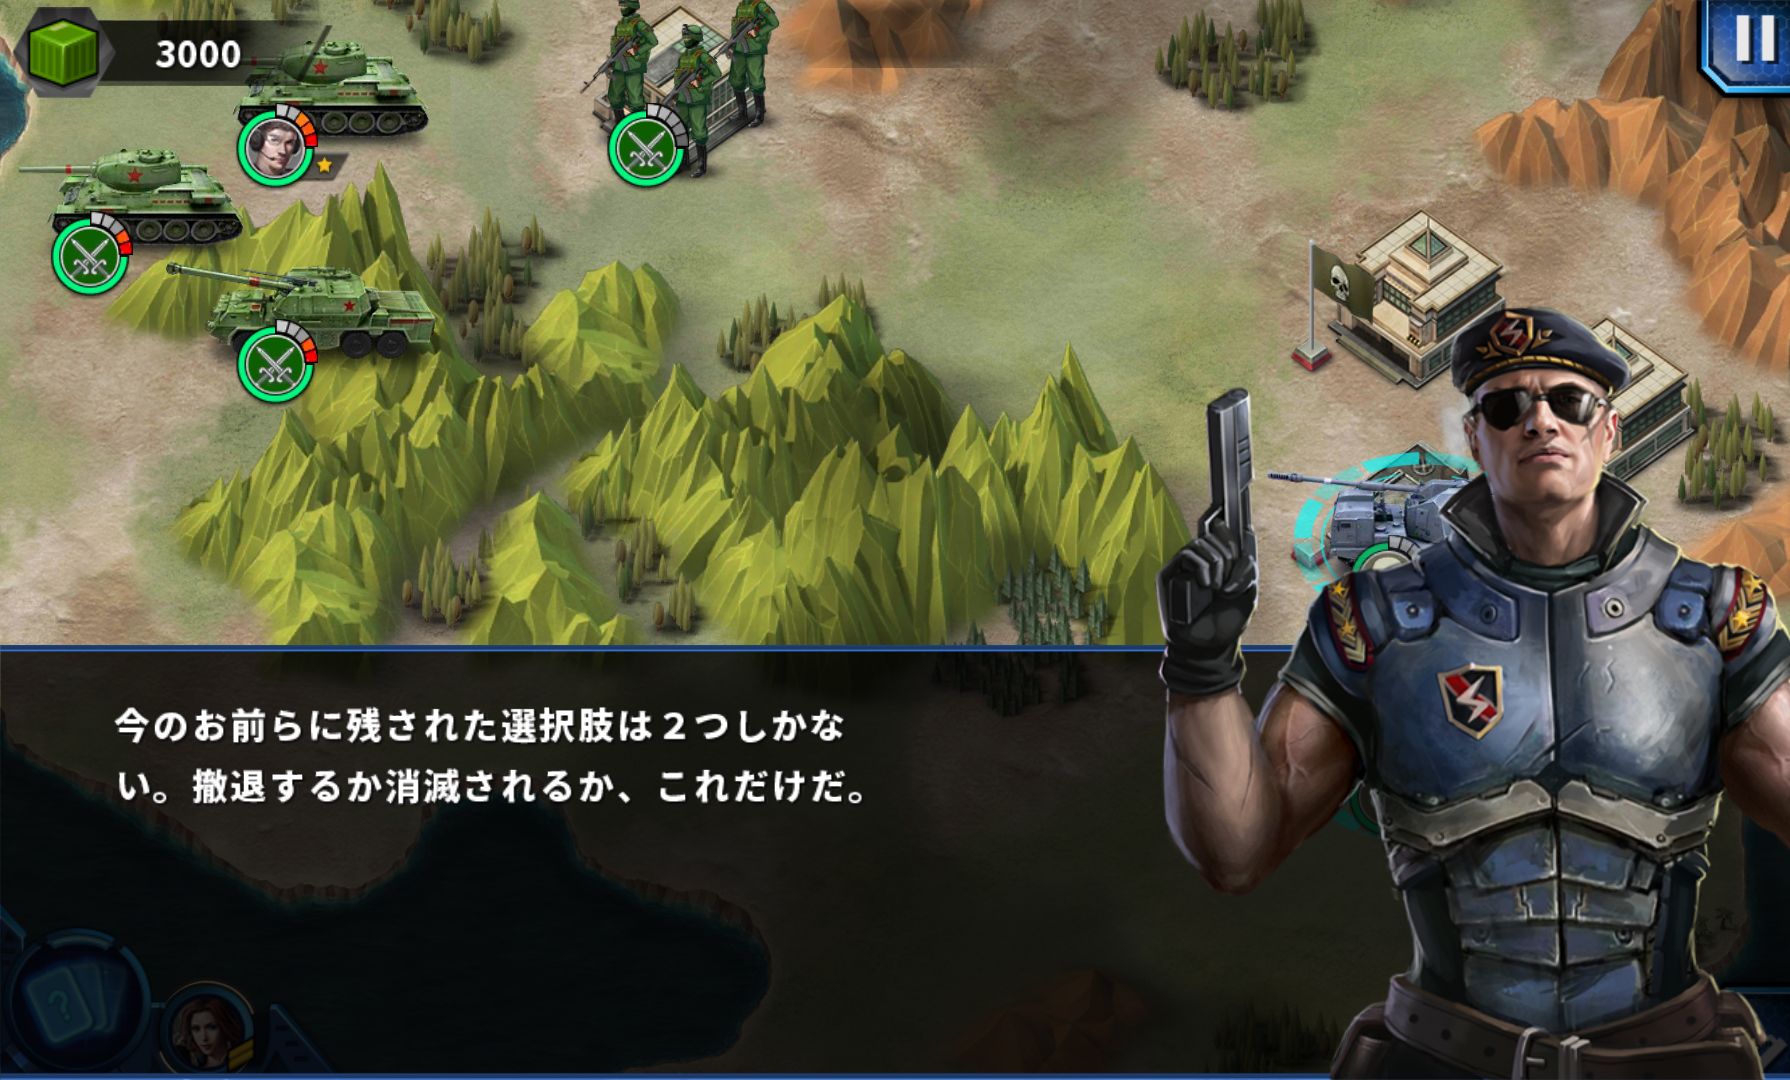 androidアプリ 将軍の栄光2: ACE攻略スクリーンショット3